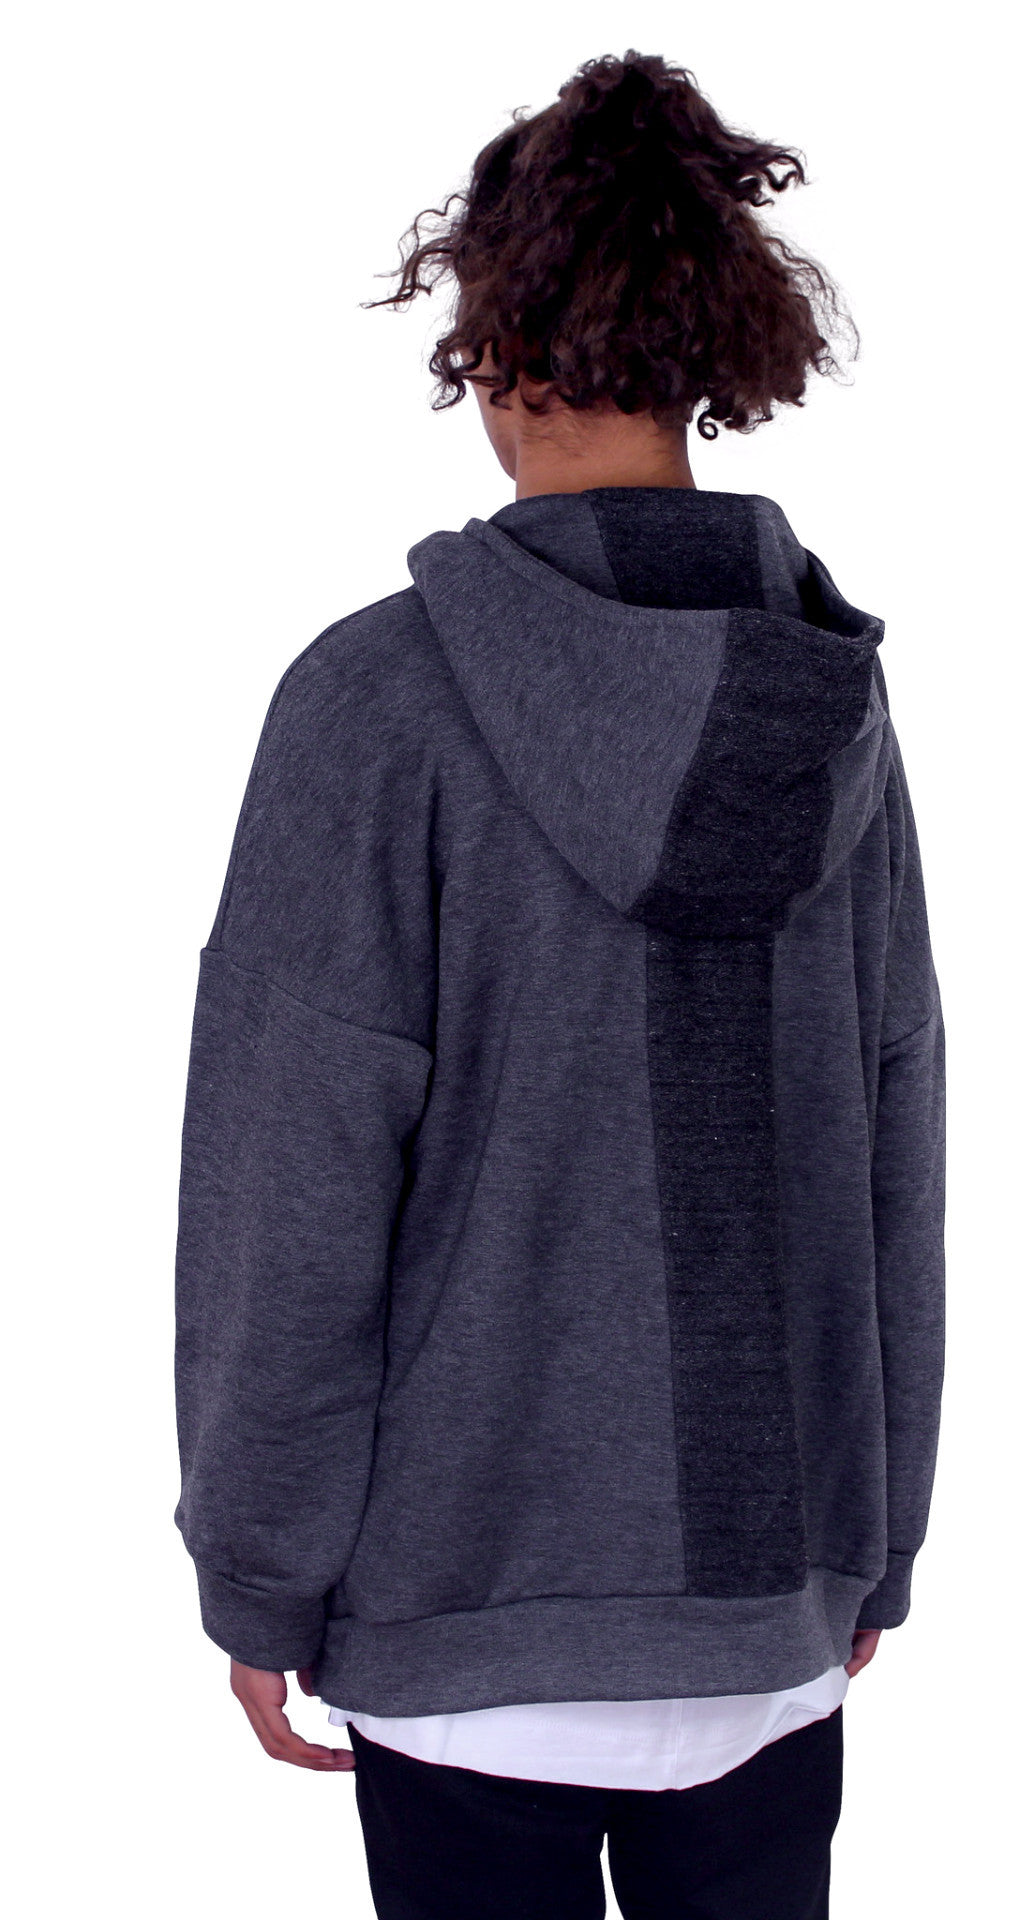 REVERSED BACK PANEL HOODIE - ASH